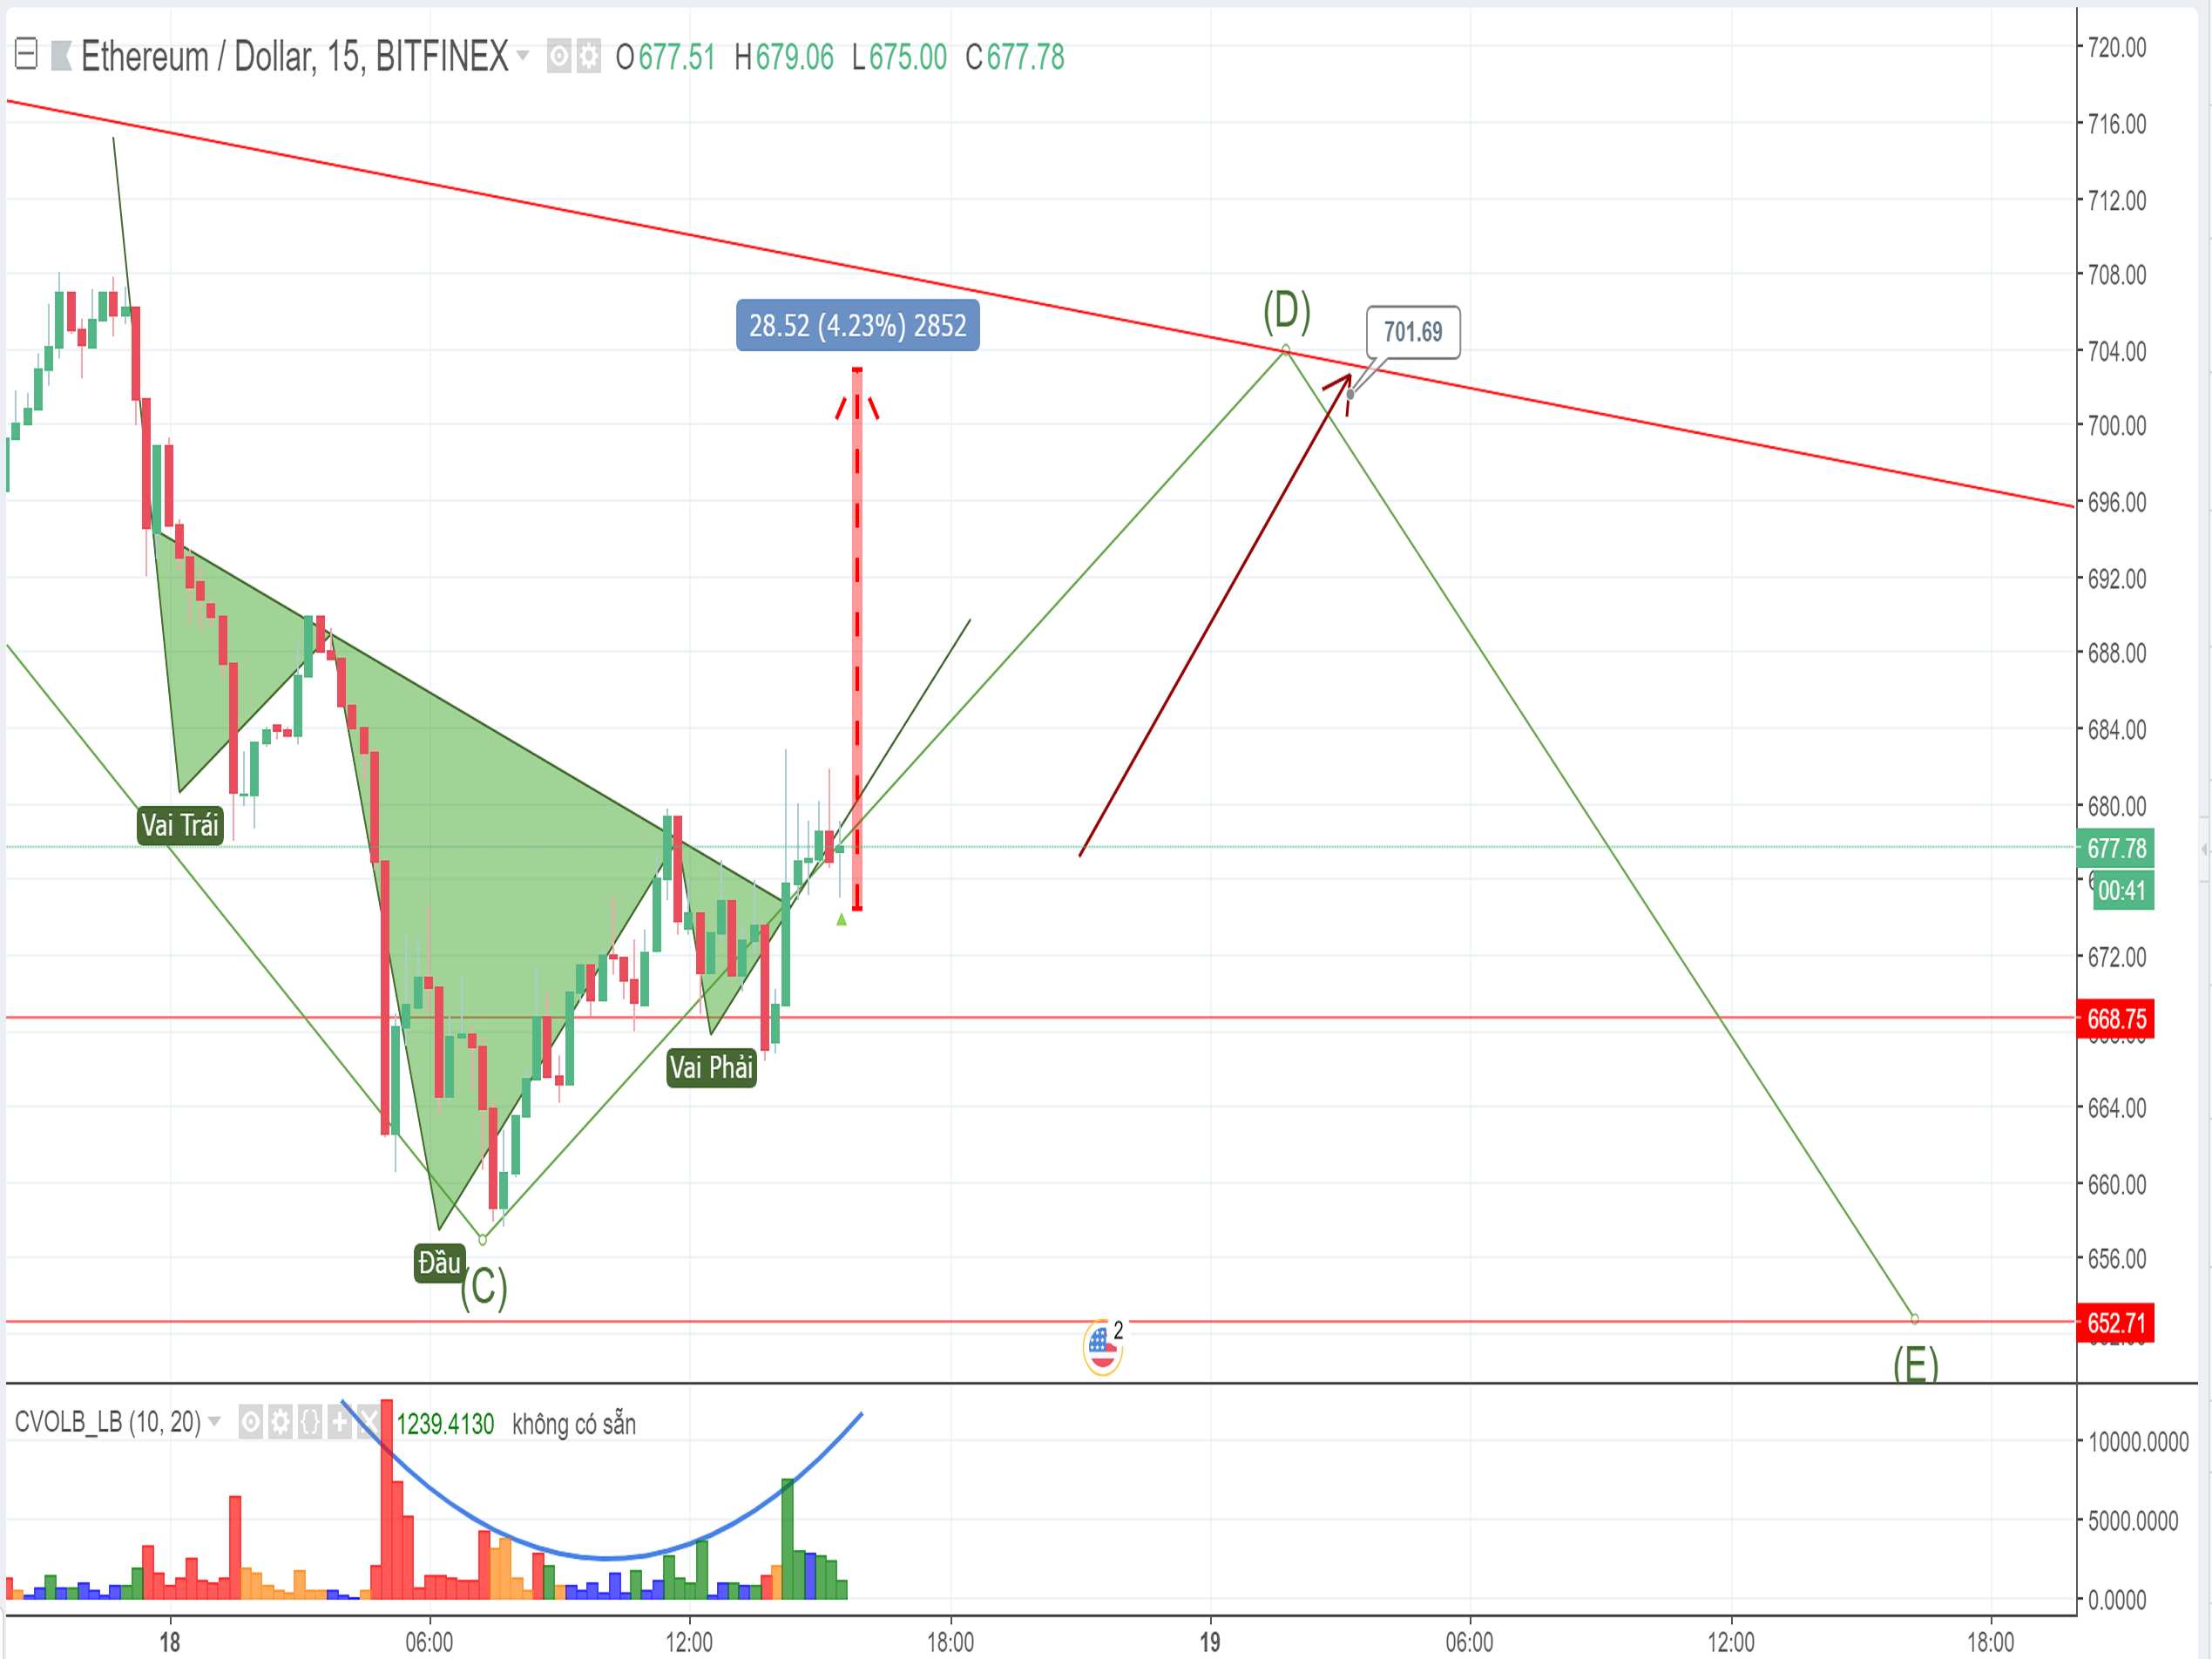 ETH price will re-test the strong resistance level of $701 today (May 18th)